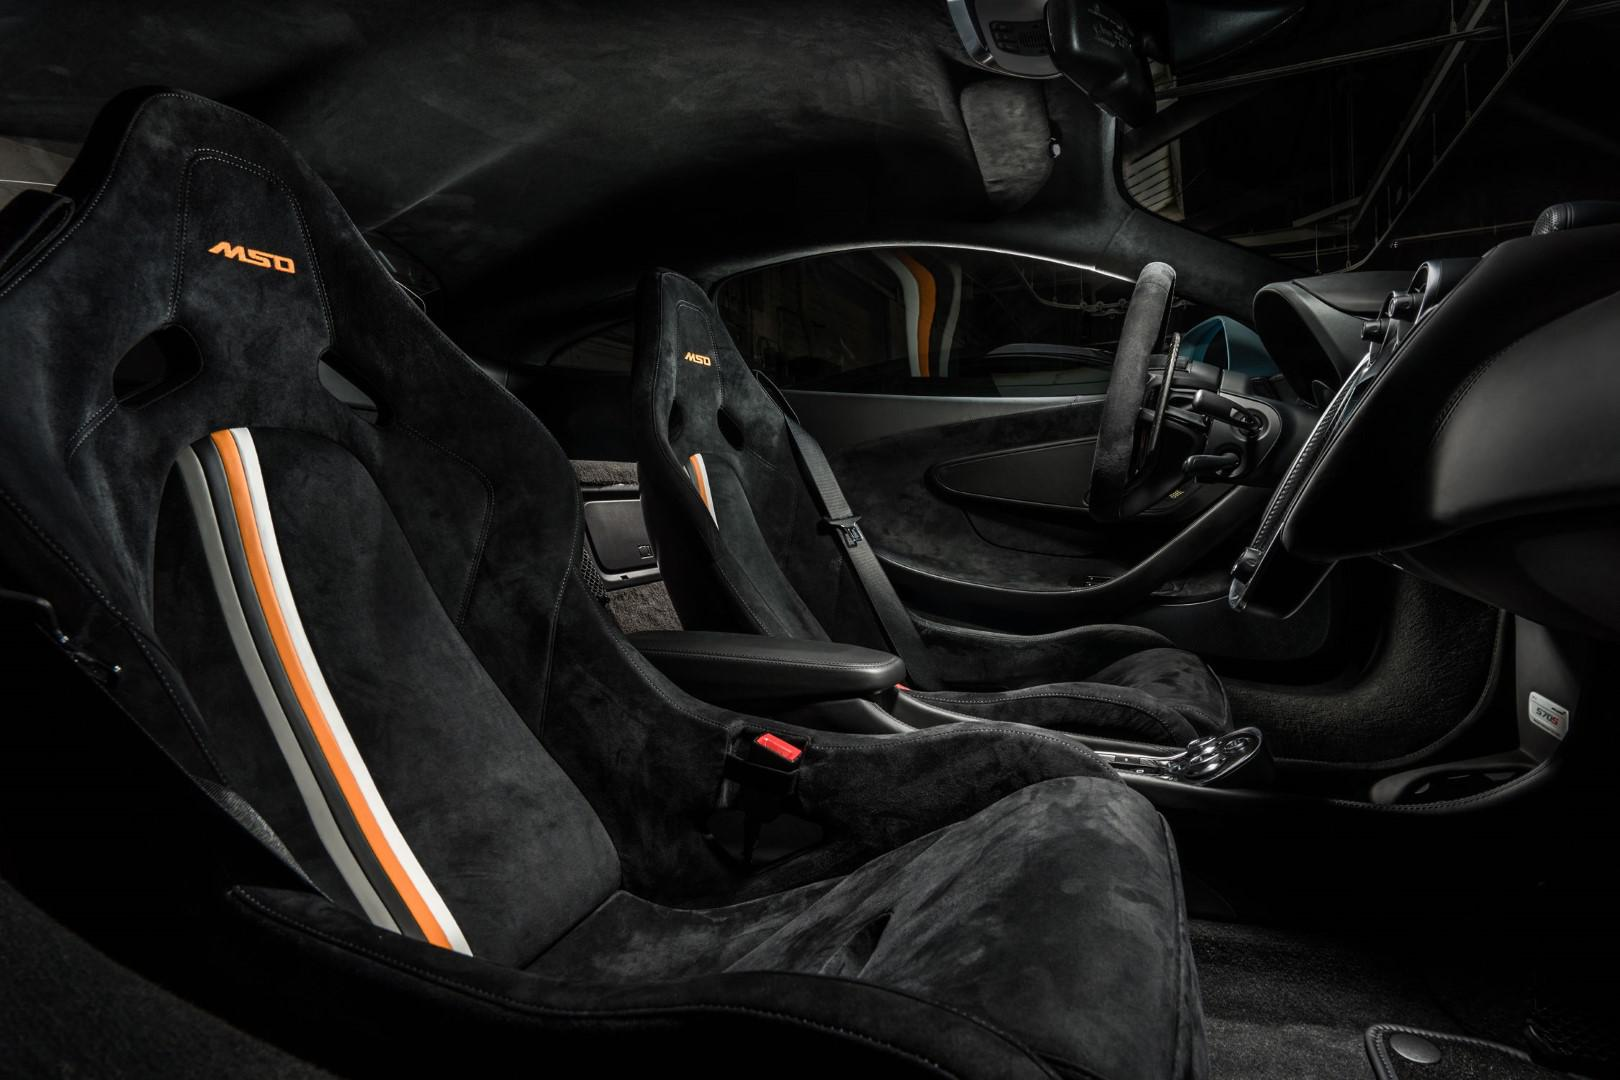 mclaren-special-operations-devoile-une-nouvelle-collection-racing-through-the-ages-928-3.jpg